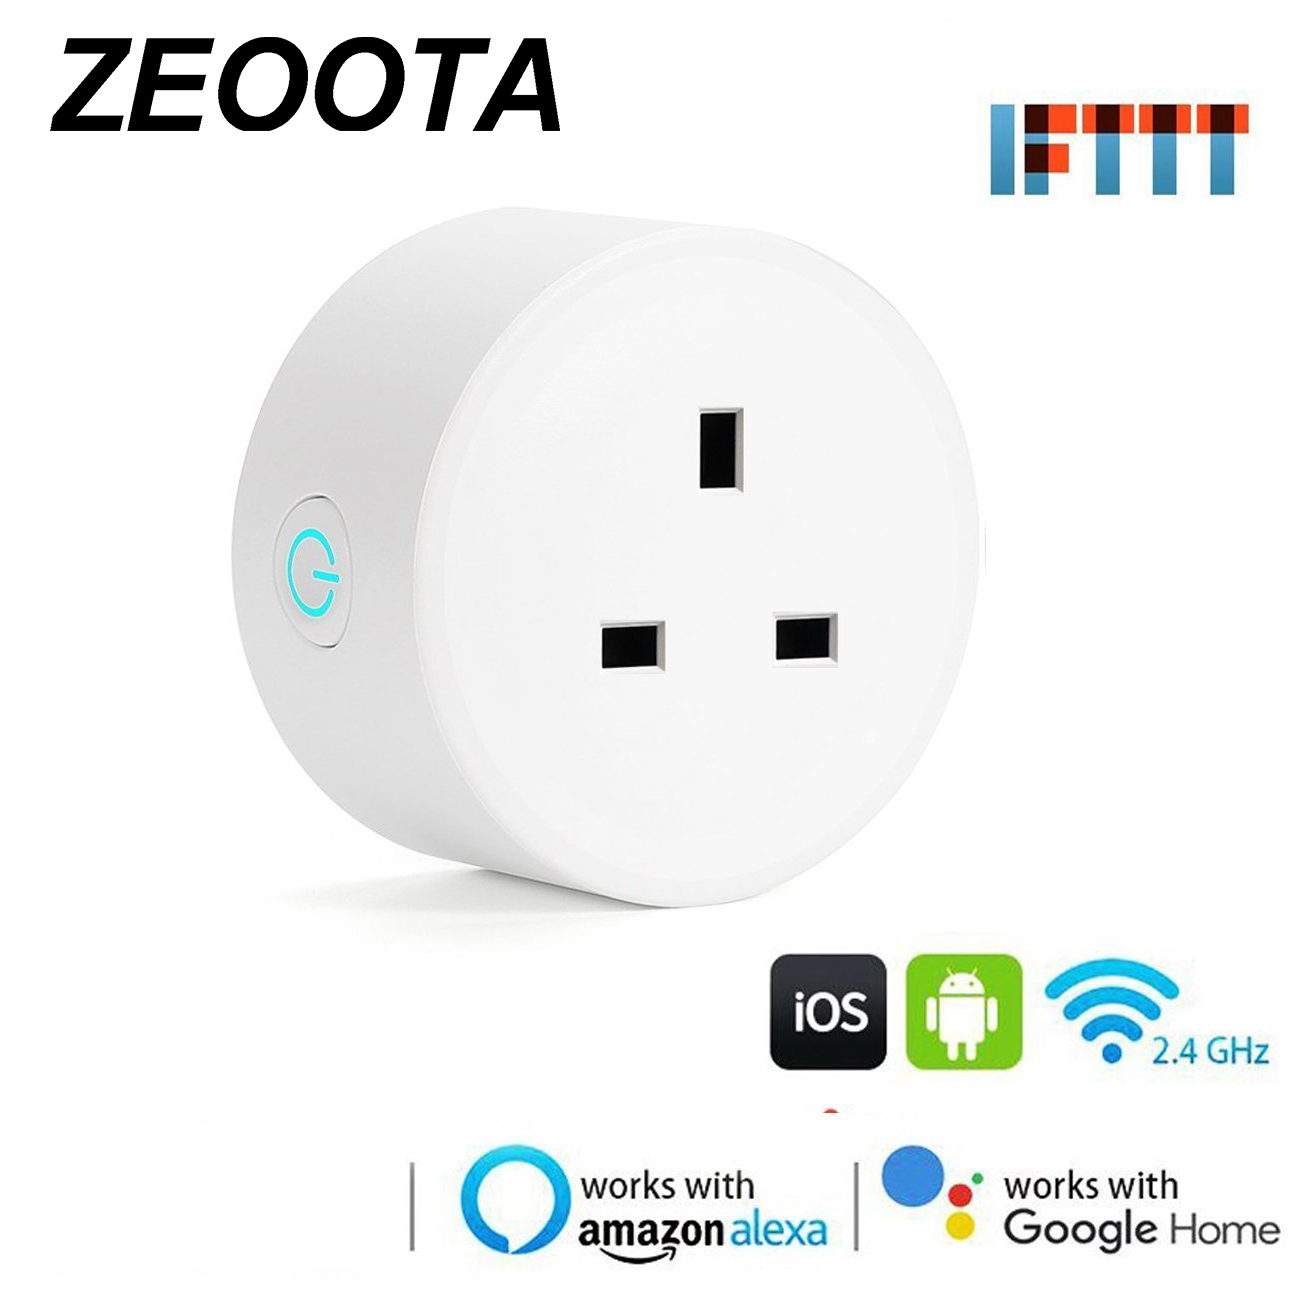 все цены на Smart WiFi Power Plug Super Mini UK Outlets Socket Work with Amazon Alexa,Google Home, IFTTT Voice Control Remote Control